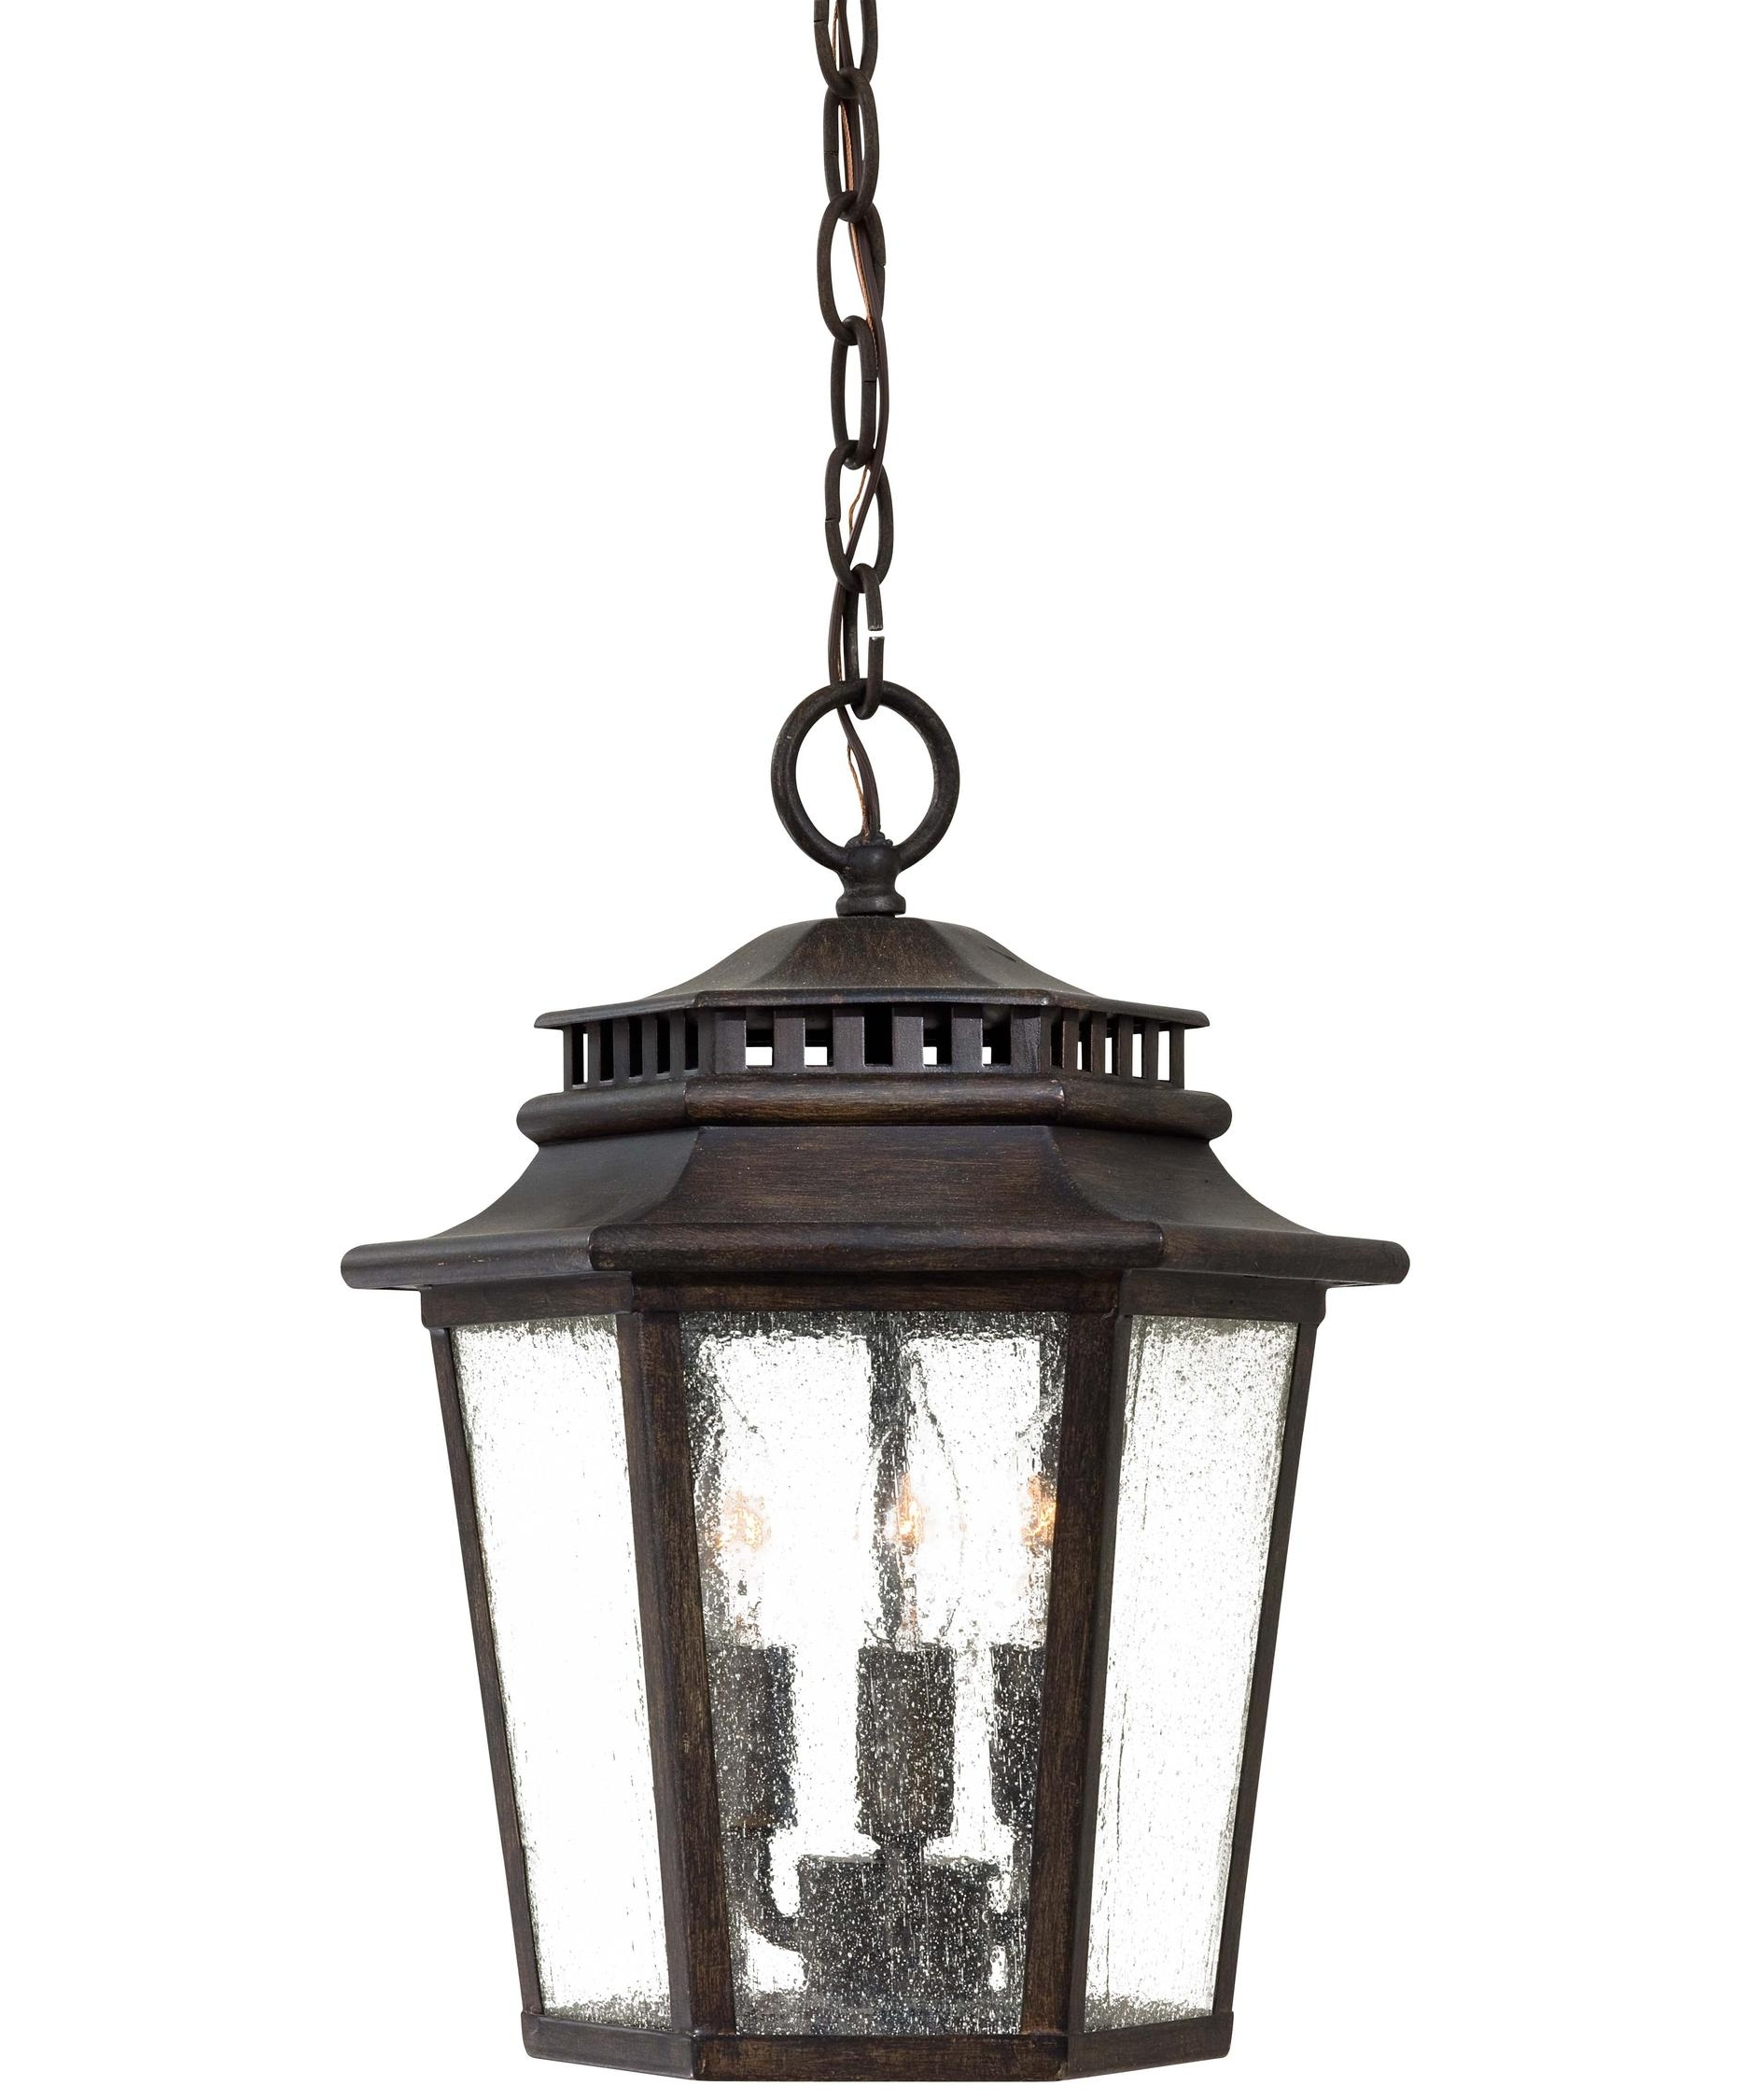 Motion Sensor Outdoor Hanging Lights Intended For Newest Large Hanging Outdoor Lights – Outdoor Designs (View 8 of 20)